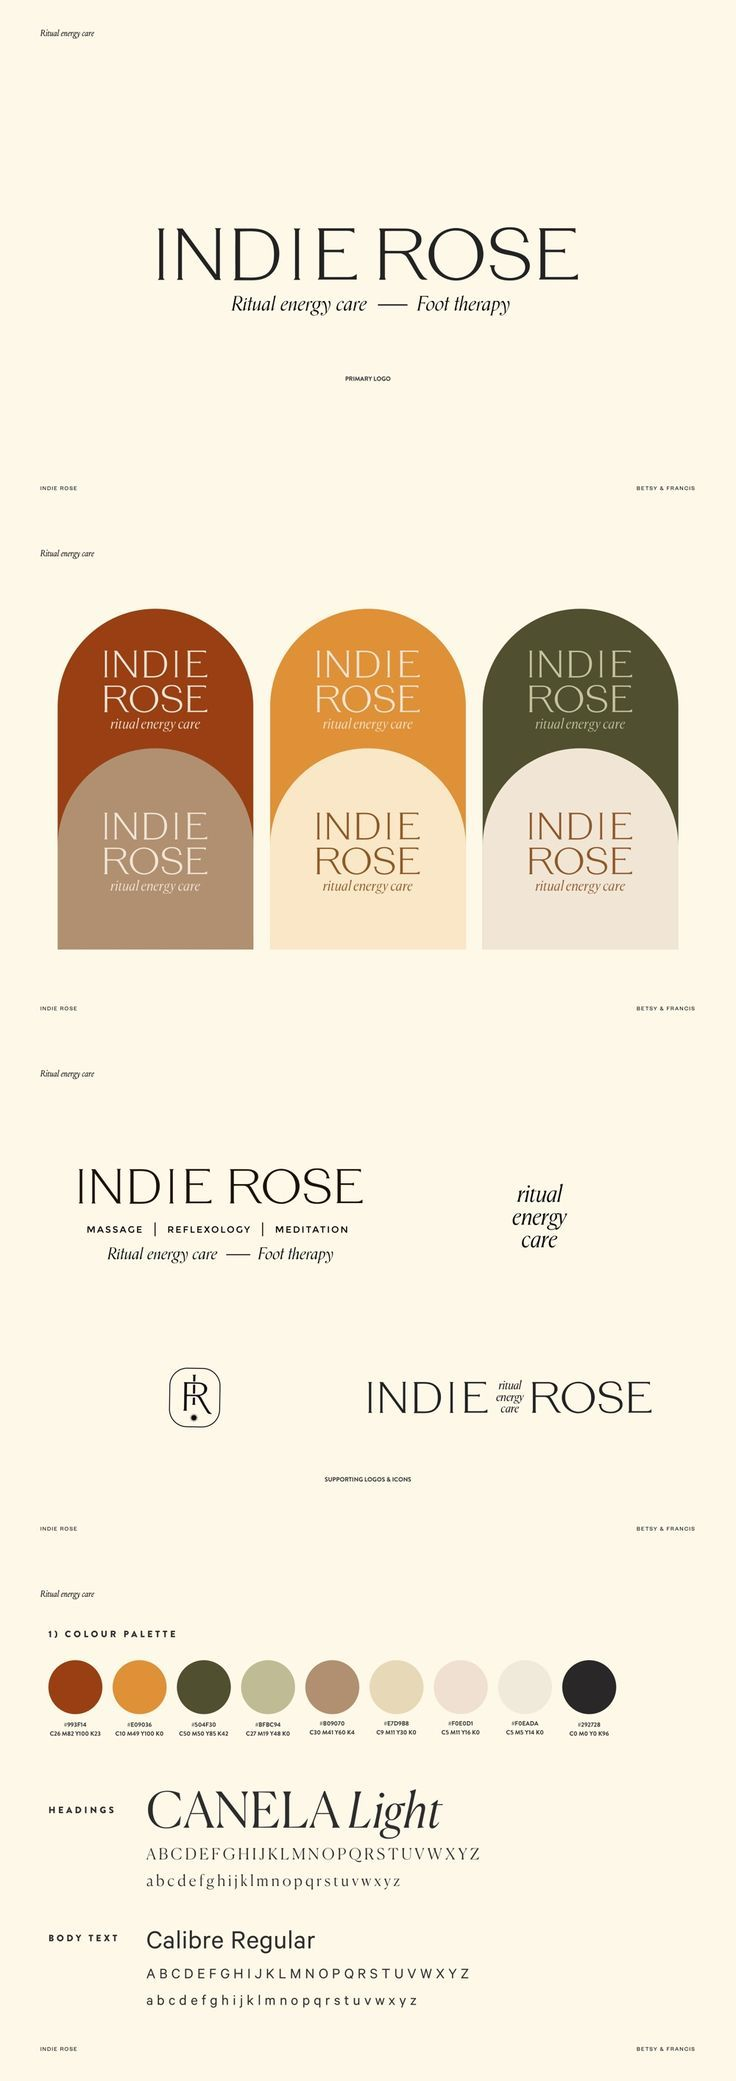 Do you have your own business? In order to market it successfully, you need a beautiful authentic and unique brand. Indie Rose is a recent branding project providing essential oils for a healthy body and mind. Encouraging radical self love and mindfulness  #mindfulnesstips #groundedquotes #essentialoil #naturalskincare #morningroutine #nighttimeroutine #affirmations #veganskincare #branddesigner #byronbay #slowfashion #creativewomen #ethicalfashion #ethicalbrand #consciousconsumer #wellness